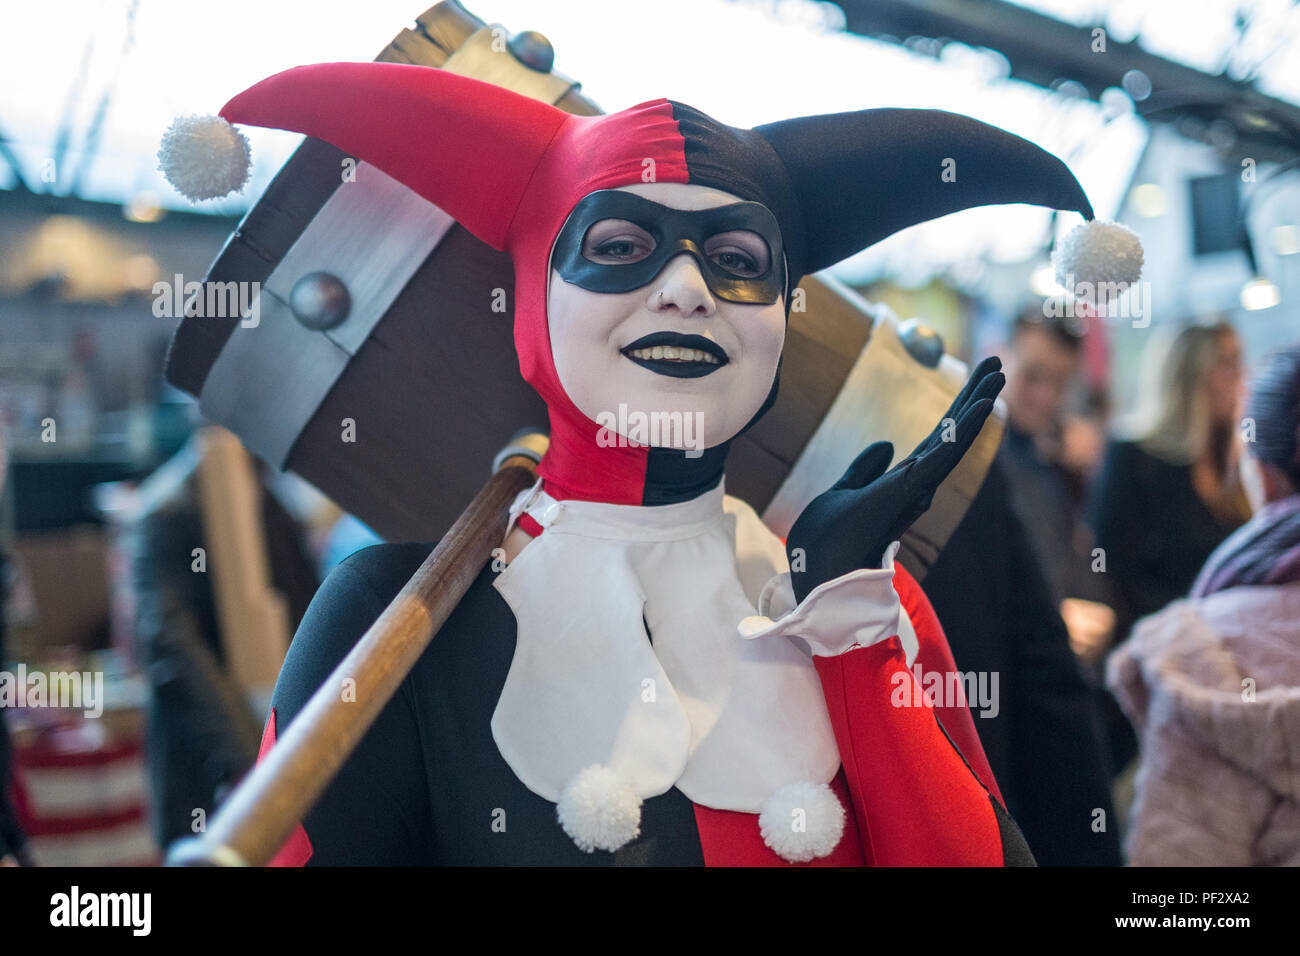 Bruseels, Belgium. 10th February, 2018. An attendee to Comicon dressed as Harley Quin from the Suicide Squad Credit: Sara Armas/Alamy Reportage. - Stock Image